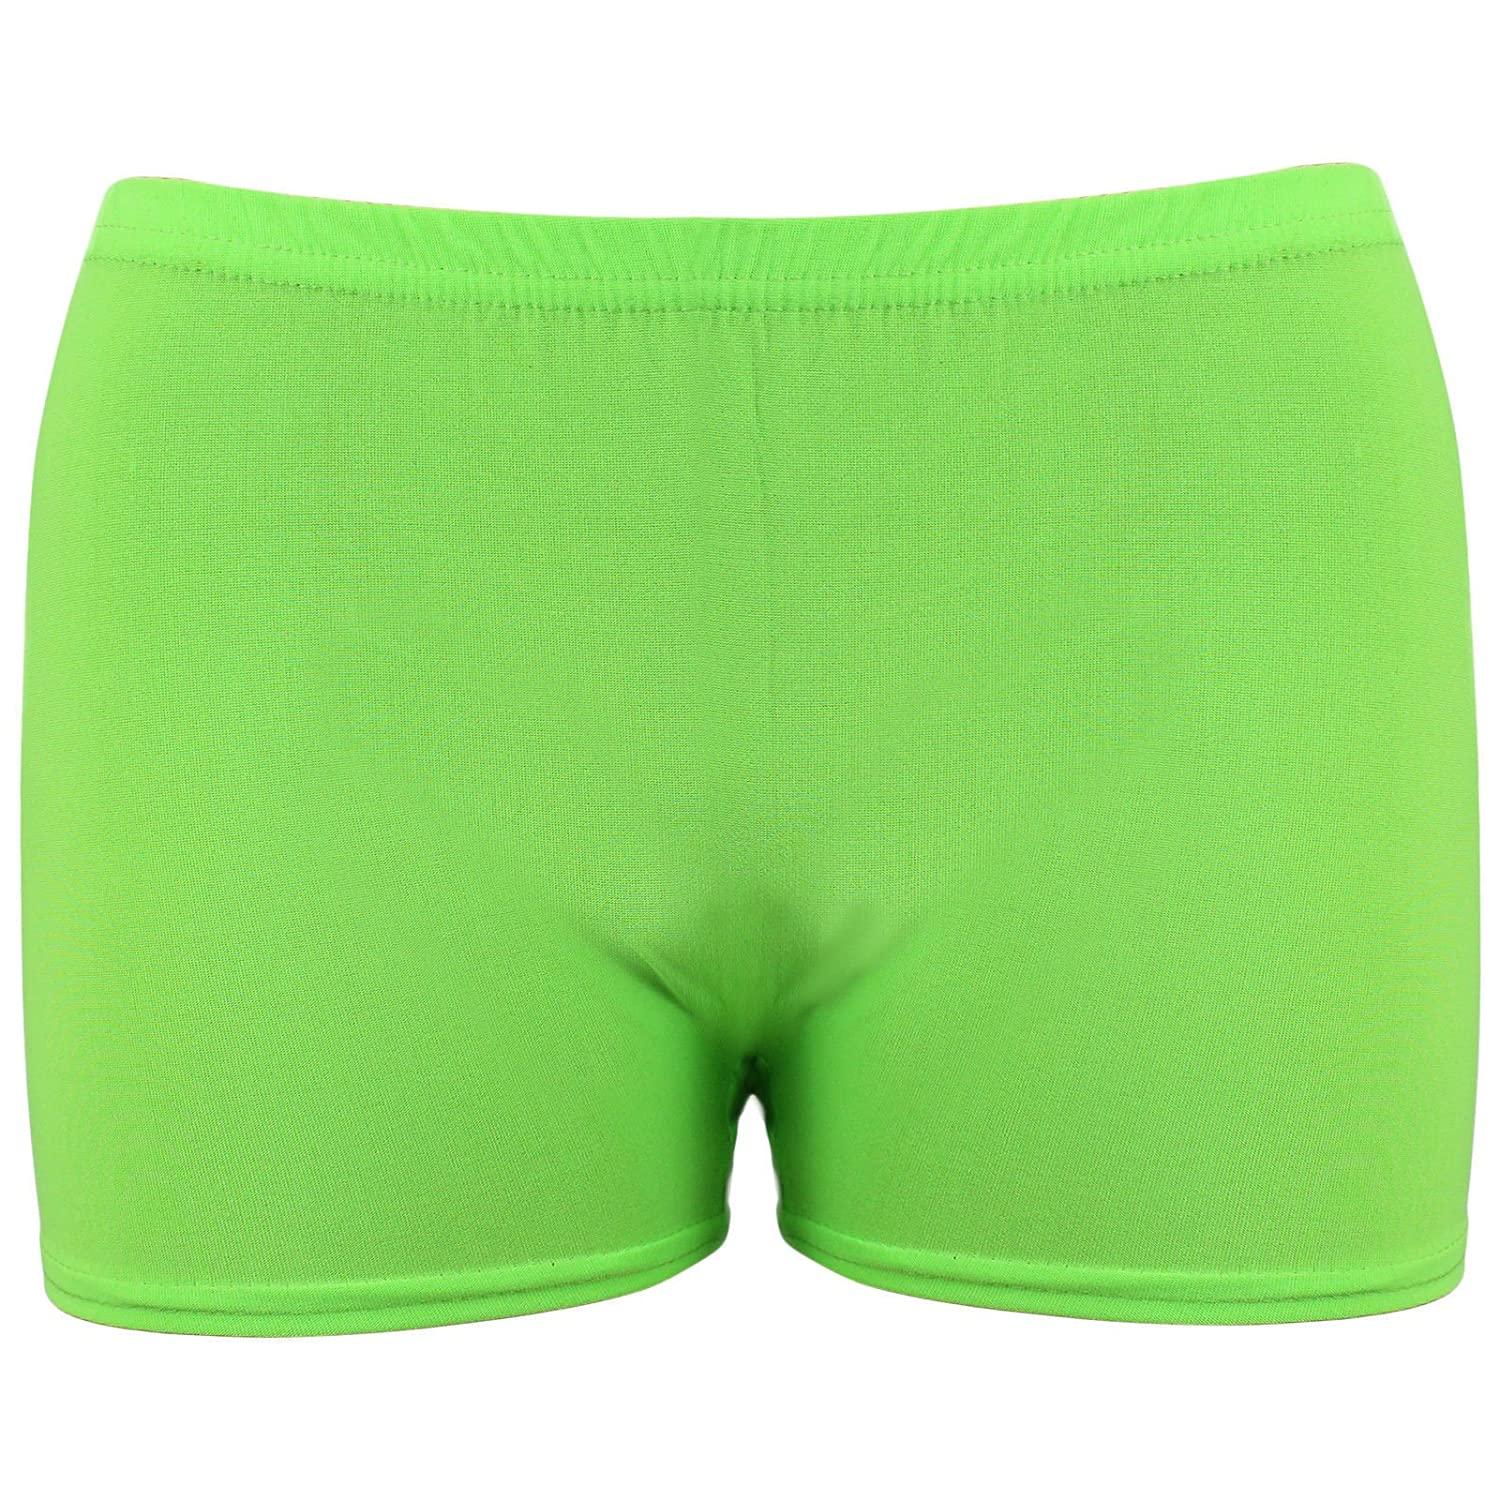 Unbranded Girls Microfiber Hot Pants Shorts Dance Gym Stretch Shorts Ages 5-12